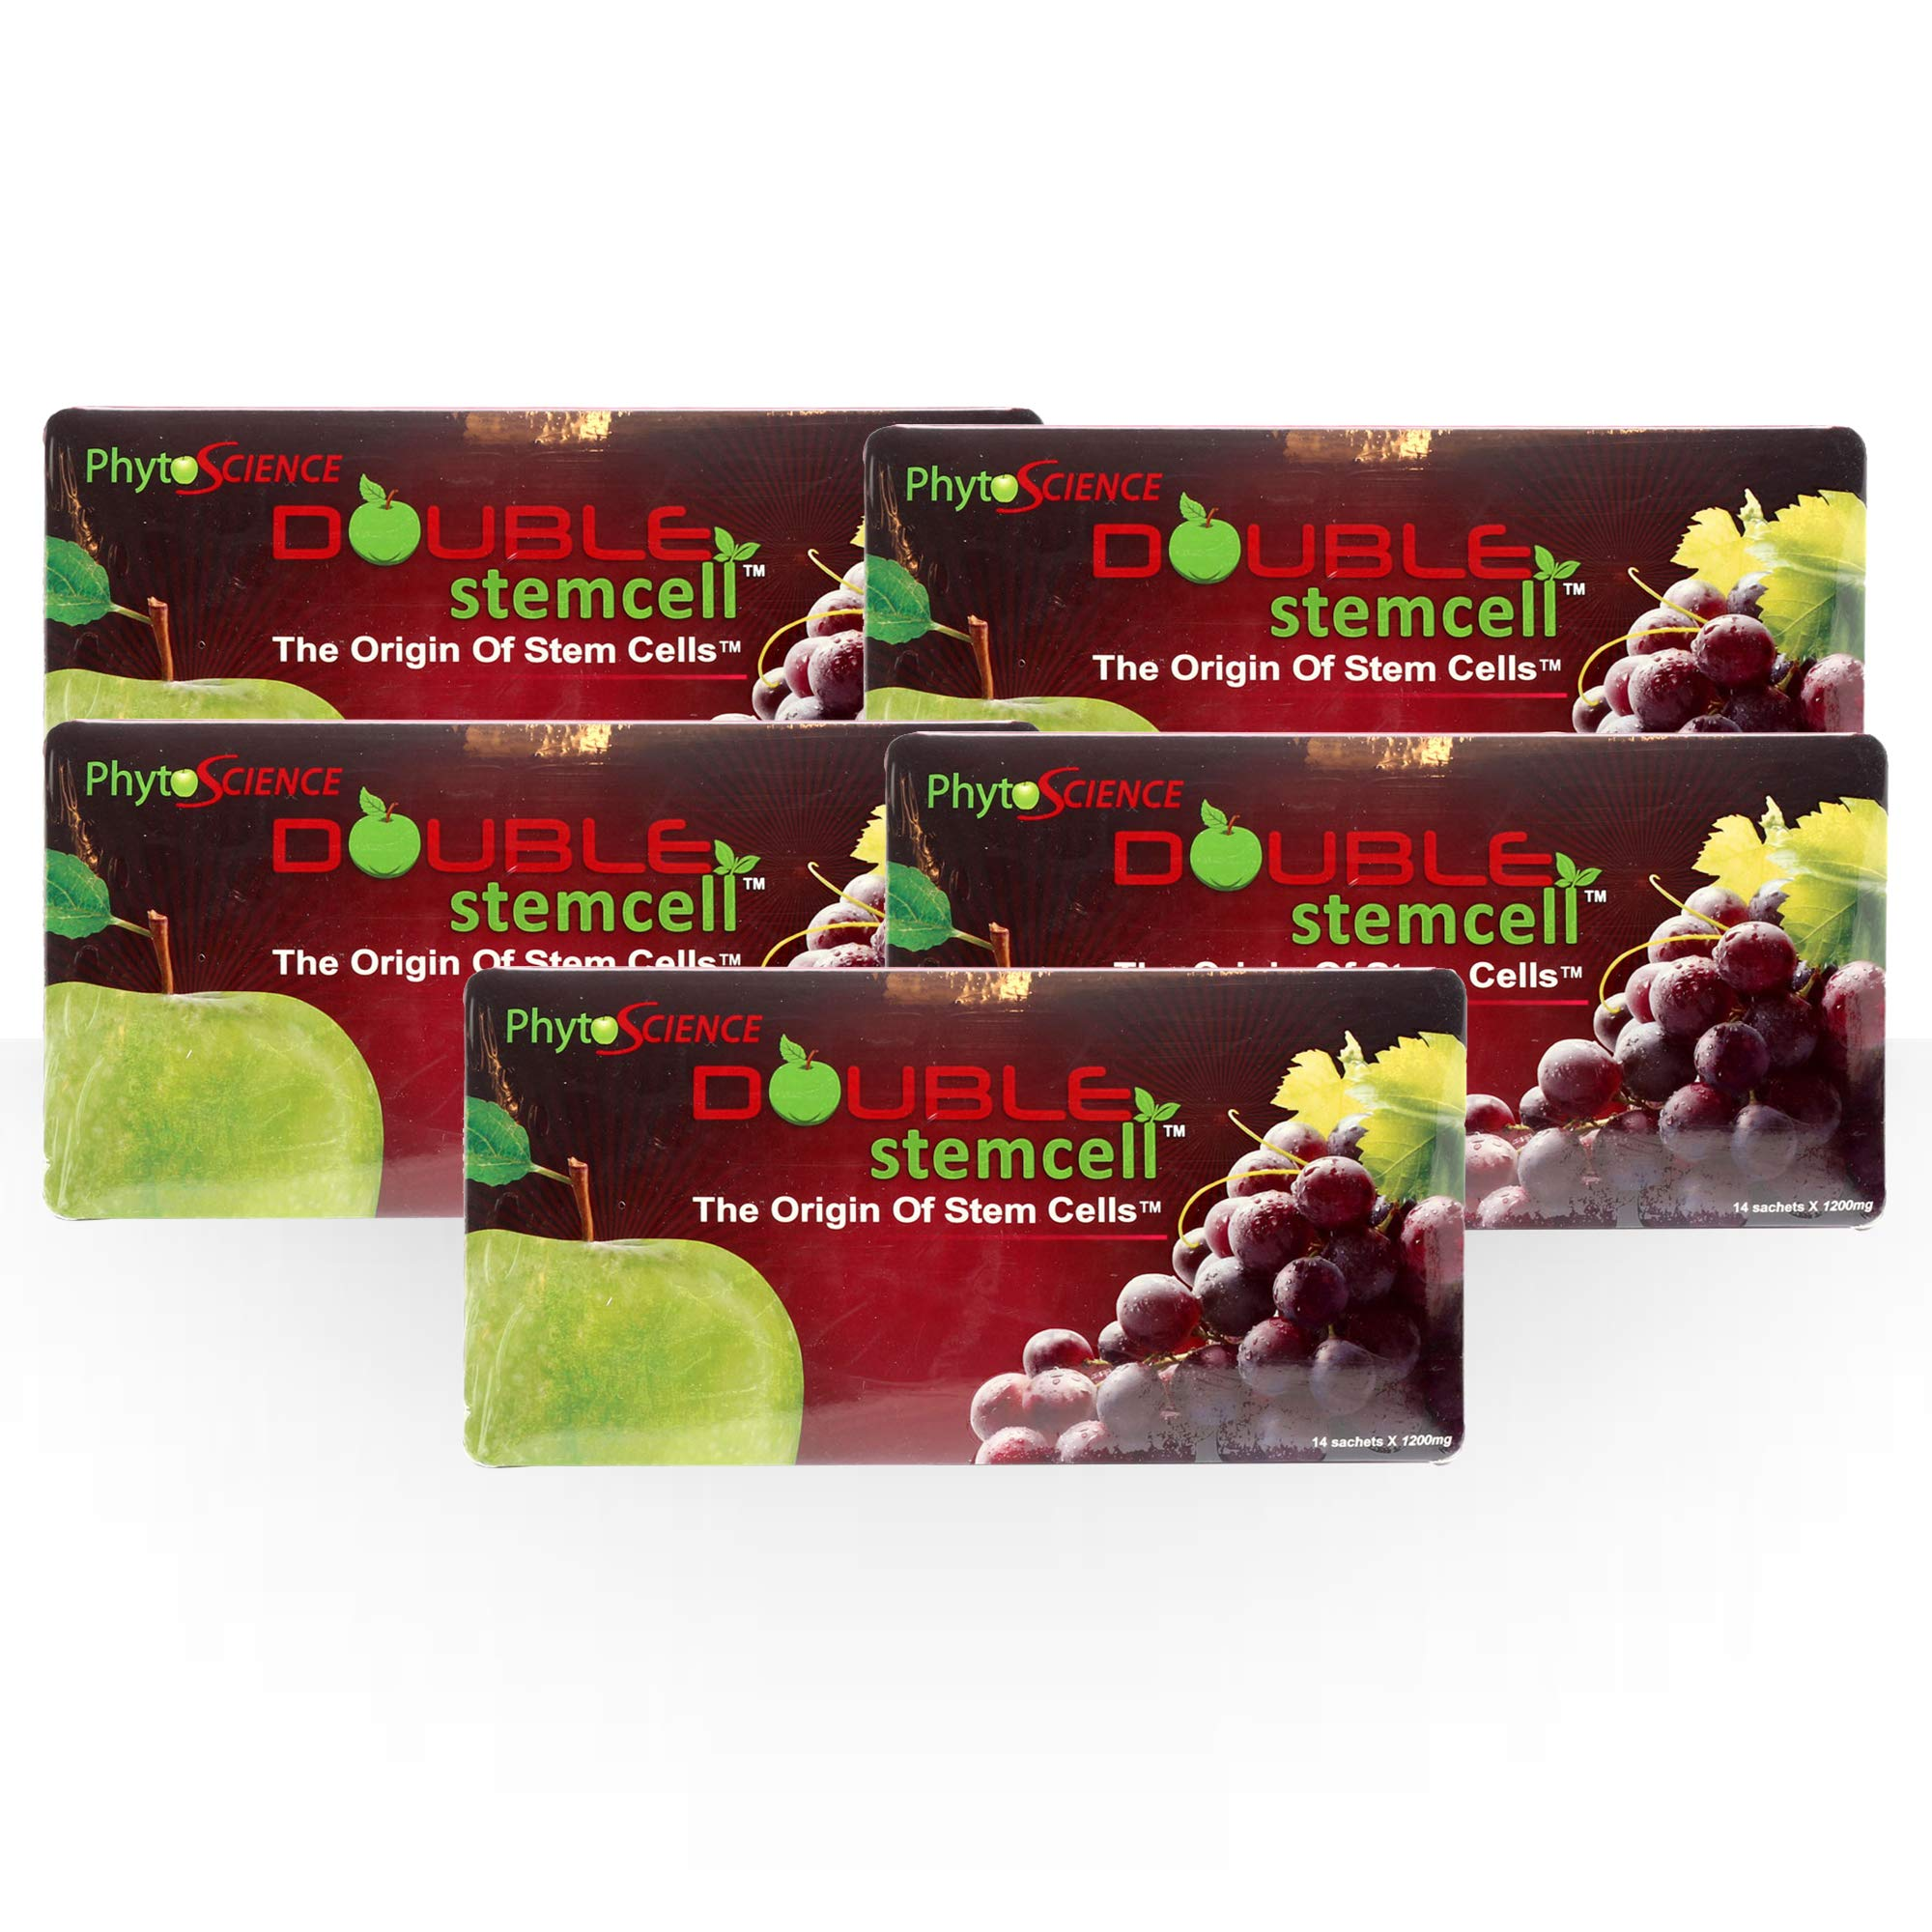 Phytoscience Apple Grape Double Stemcell 4 Packs Free 1 Packs (Origin Stem cell Swiss Quality Formula) by PhytoScience